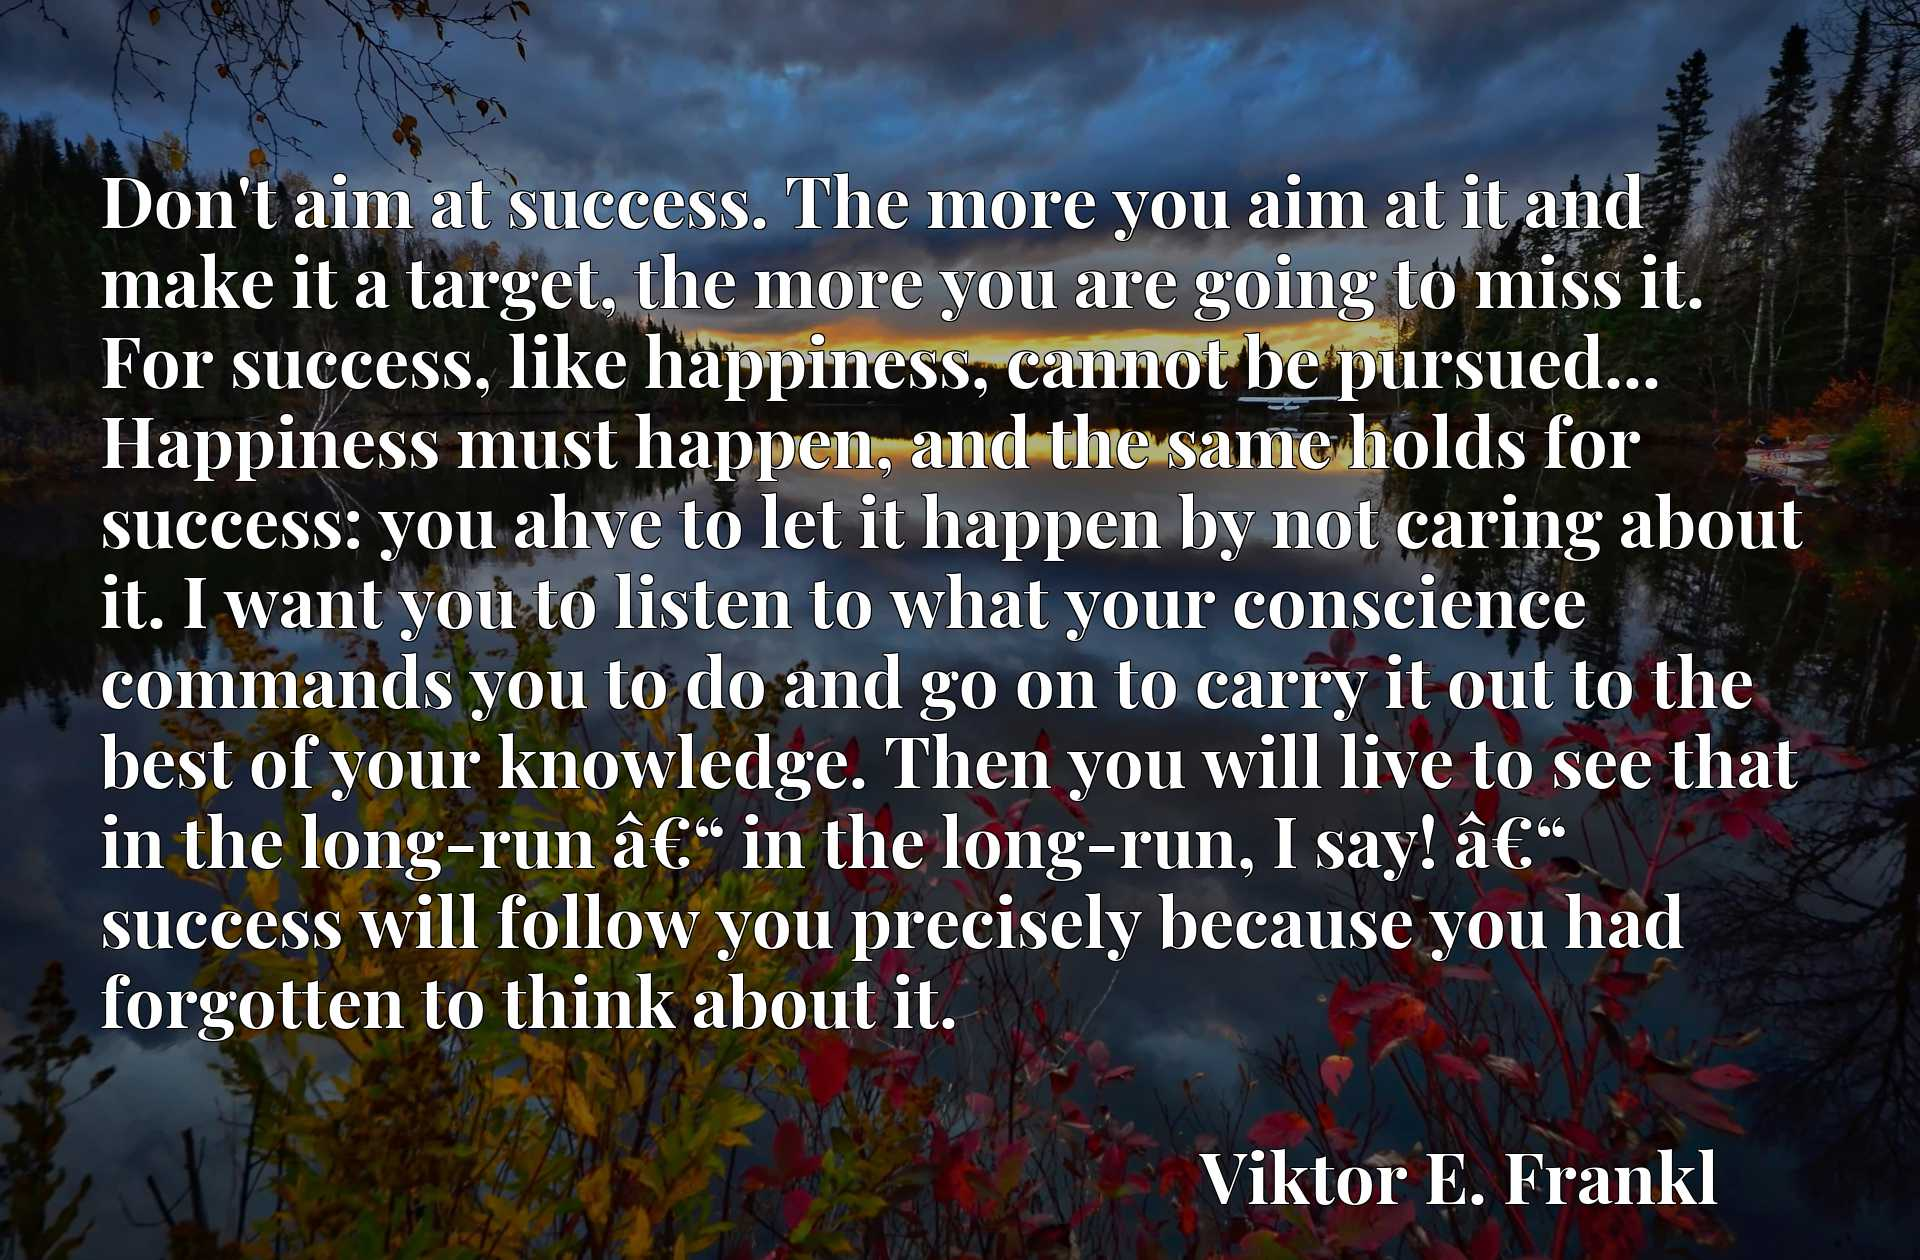 """Don't aim at success. The more you aim at it and make it a target, the more you are going to miss it. For success, like happiness, cannot be pursued... Happiness must happen, and the same holds for success: you ahve to let it happen by not caring about it. I want you to listen to what your conscience commands you to do and go on to carry it out to the best of your knowledge. Then you will live to see that in the long-run aEUR"""" in the long-run, I say! aEUR"""" success will follow you precisely because you had forgotten to think about it."""